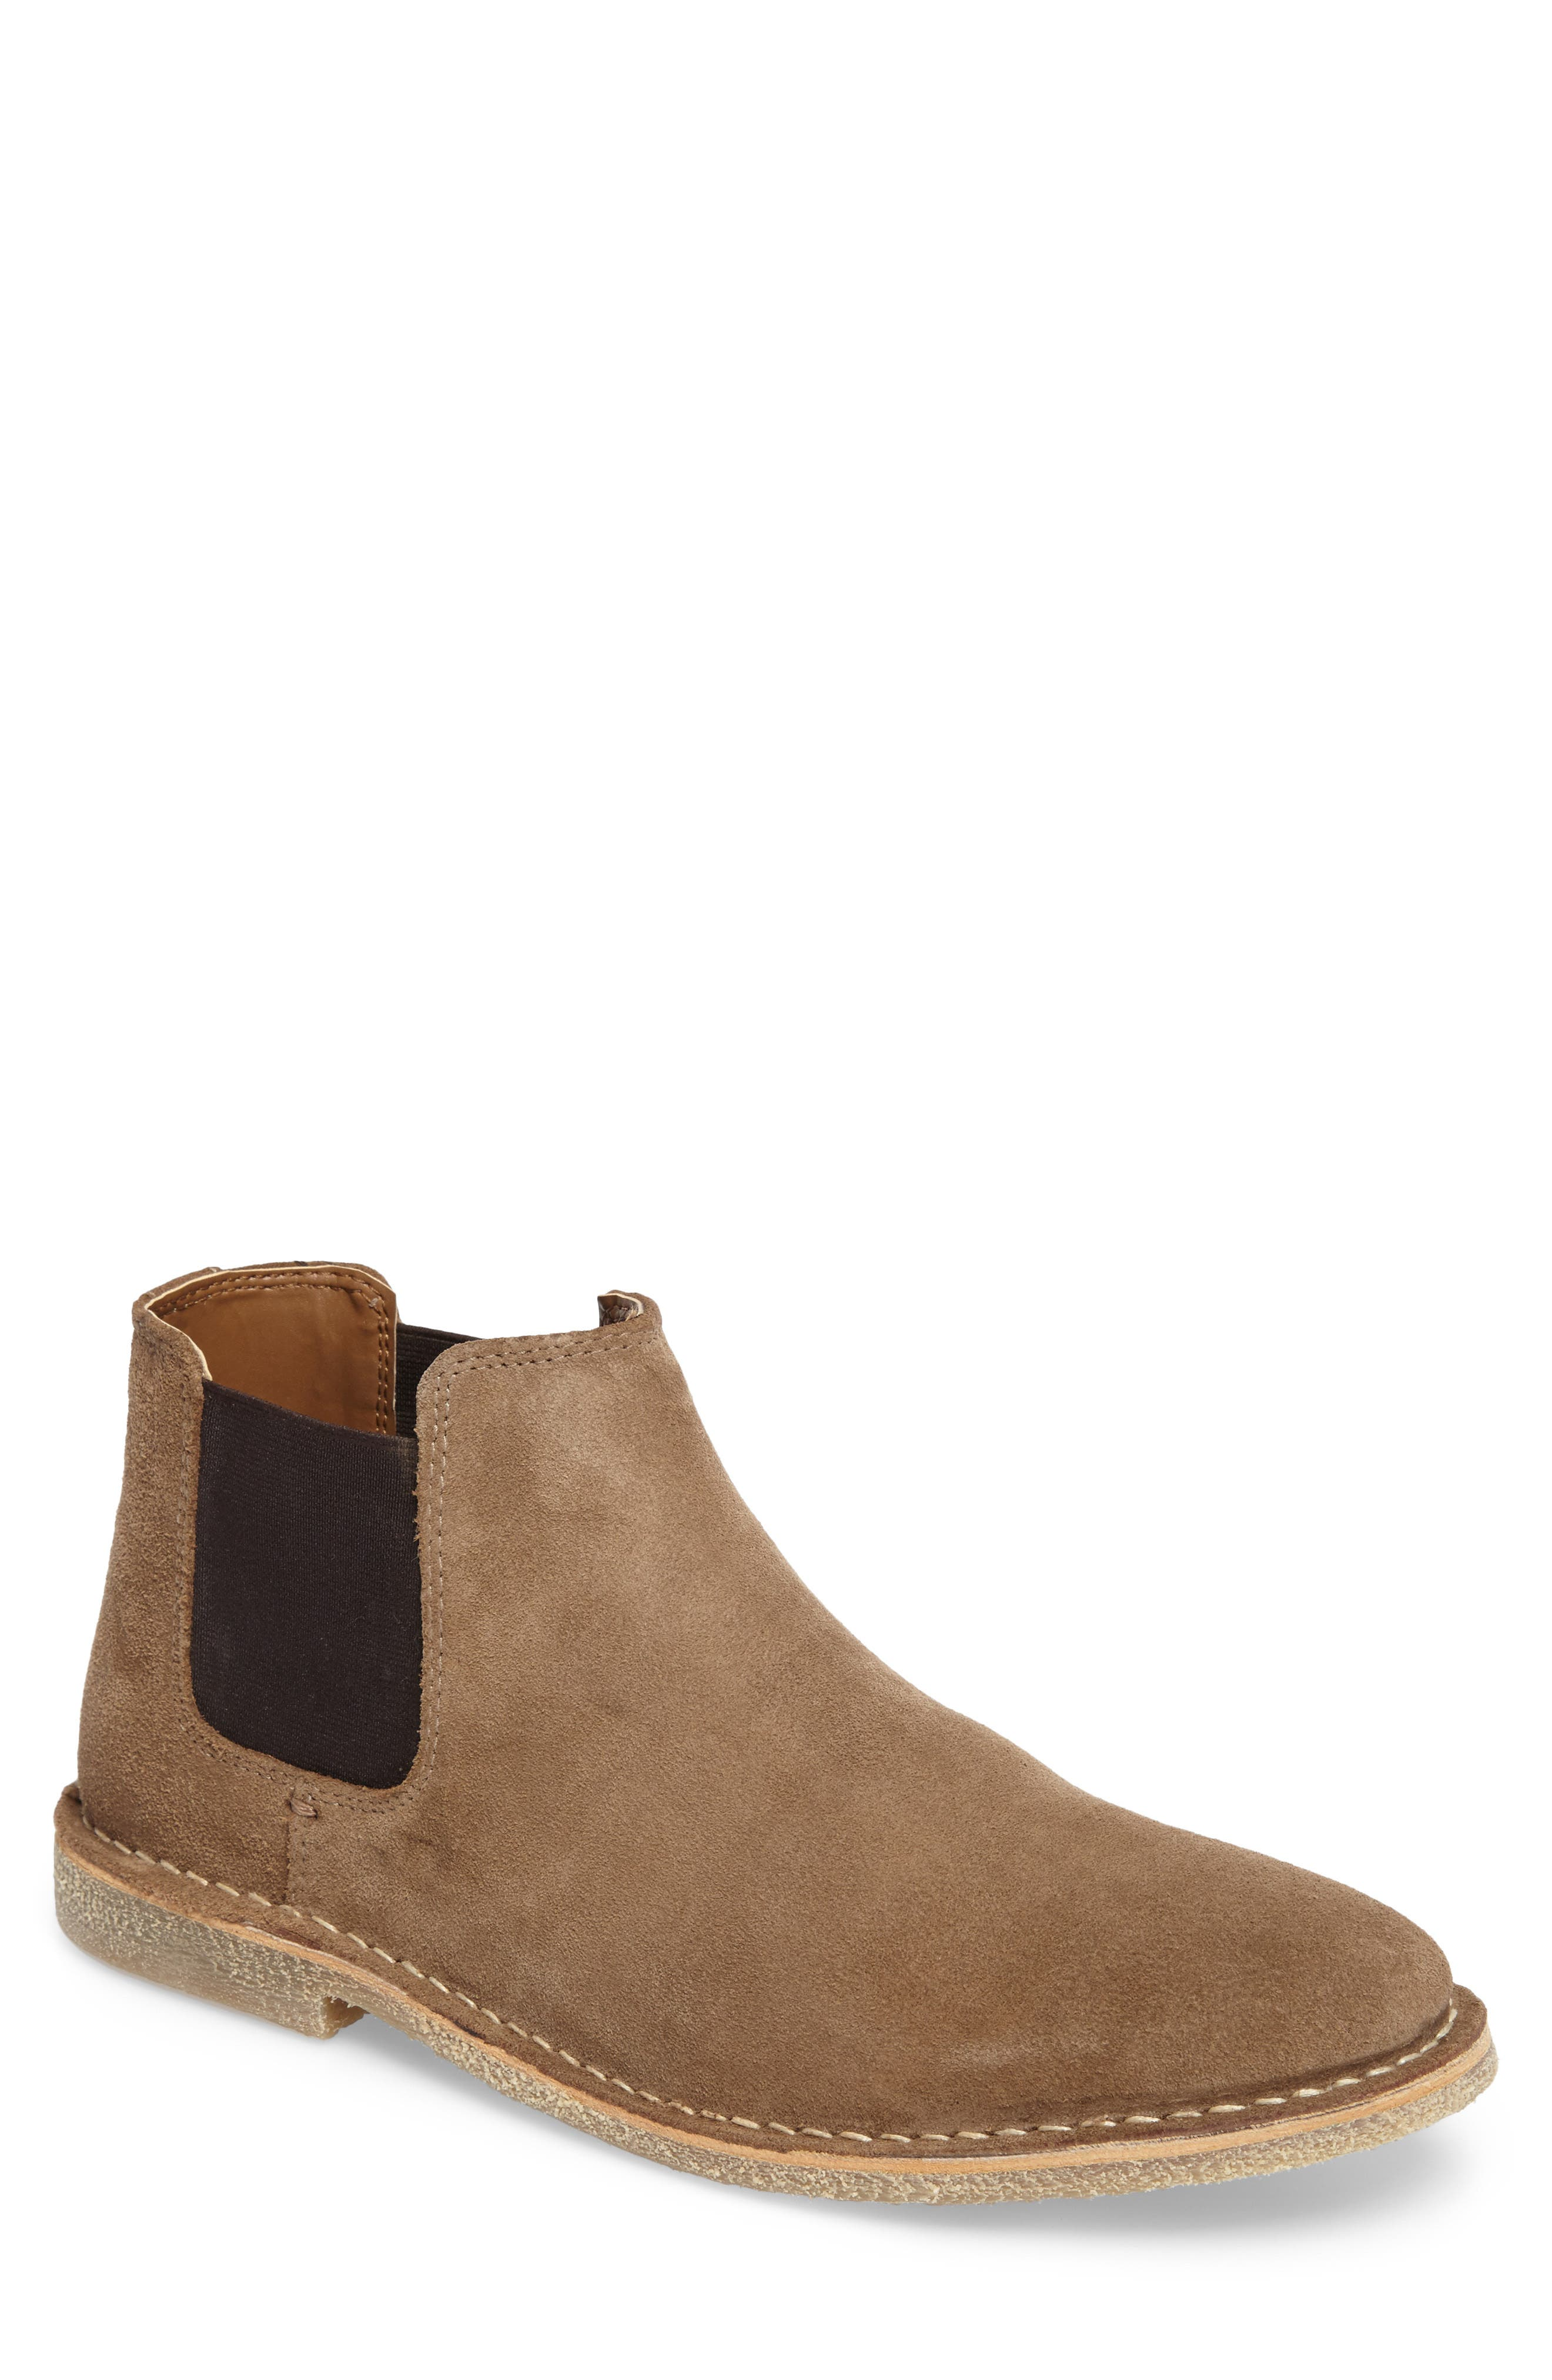 Main Image - Kenneth Cole Reaction Chelsea Boot (Men)